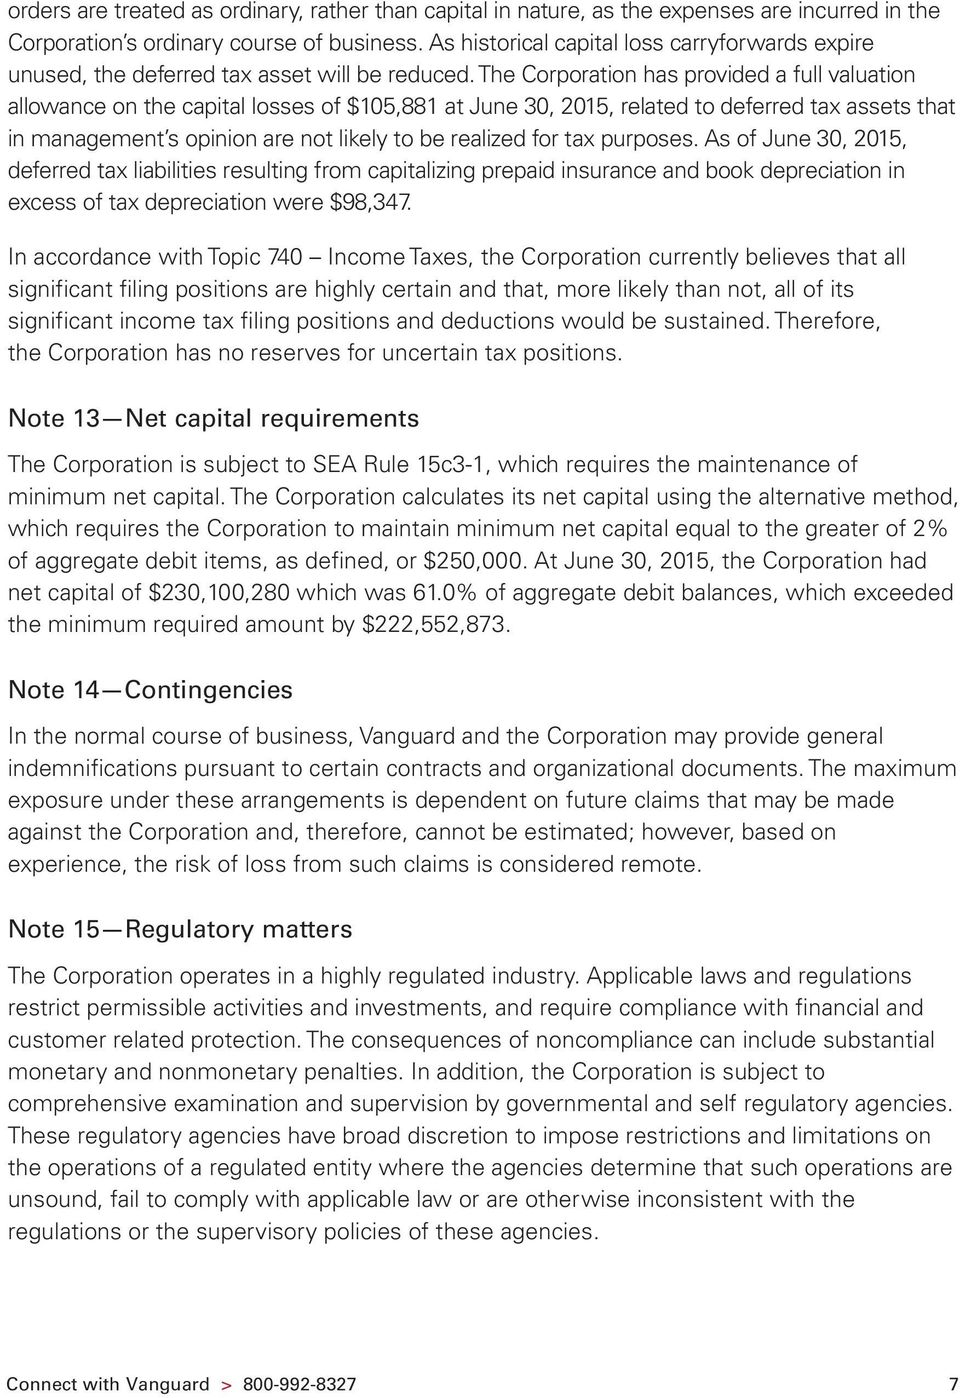 The Corporation has provided a full valuation allowance on the capital losses of $105,881 at June 30, 2015, related to deferred tax assets that in management s opinion are not likely to be realized